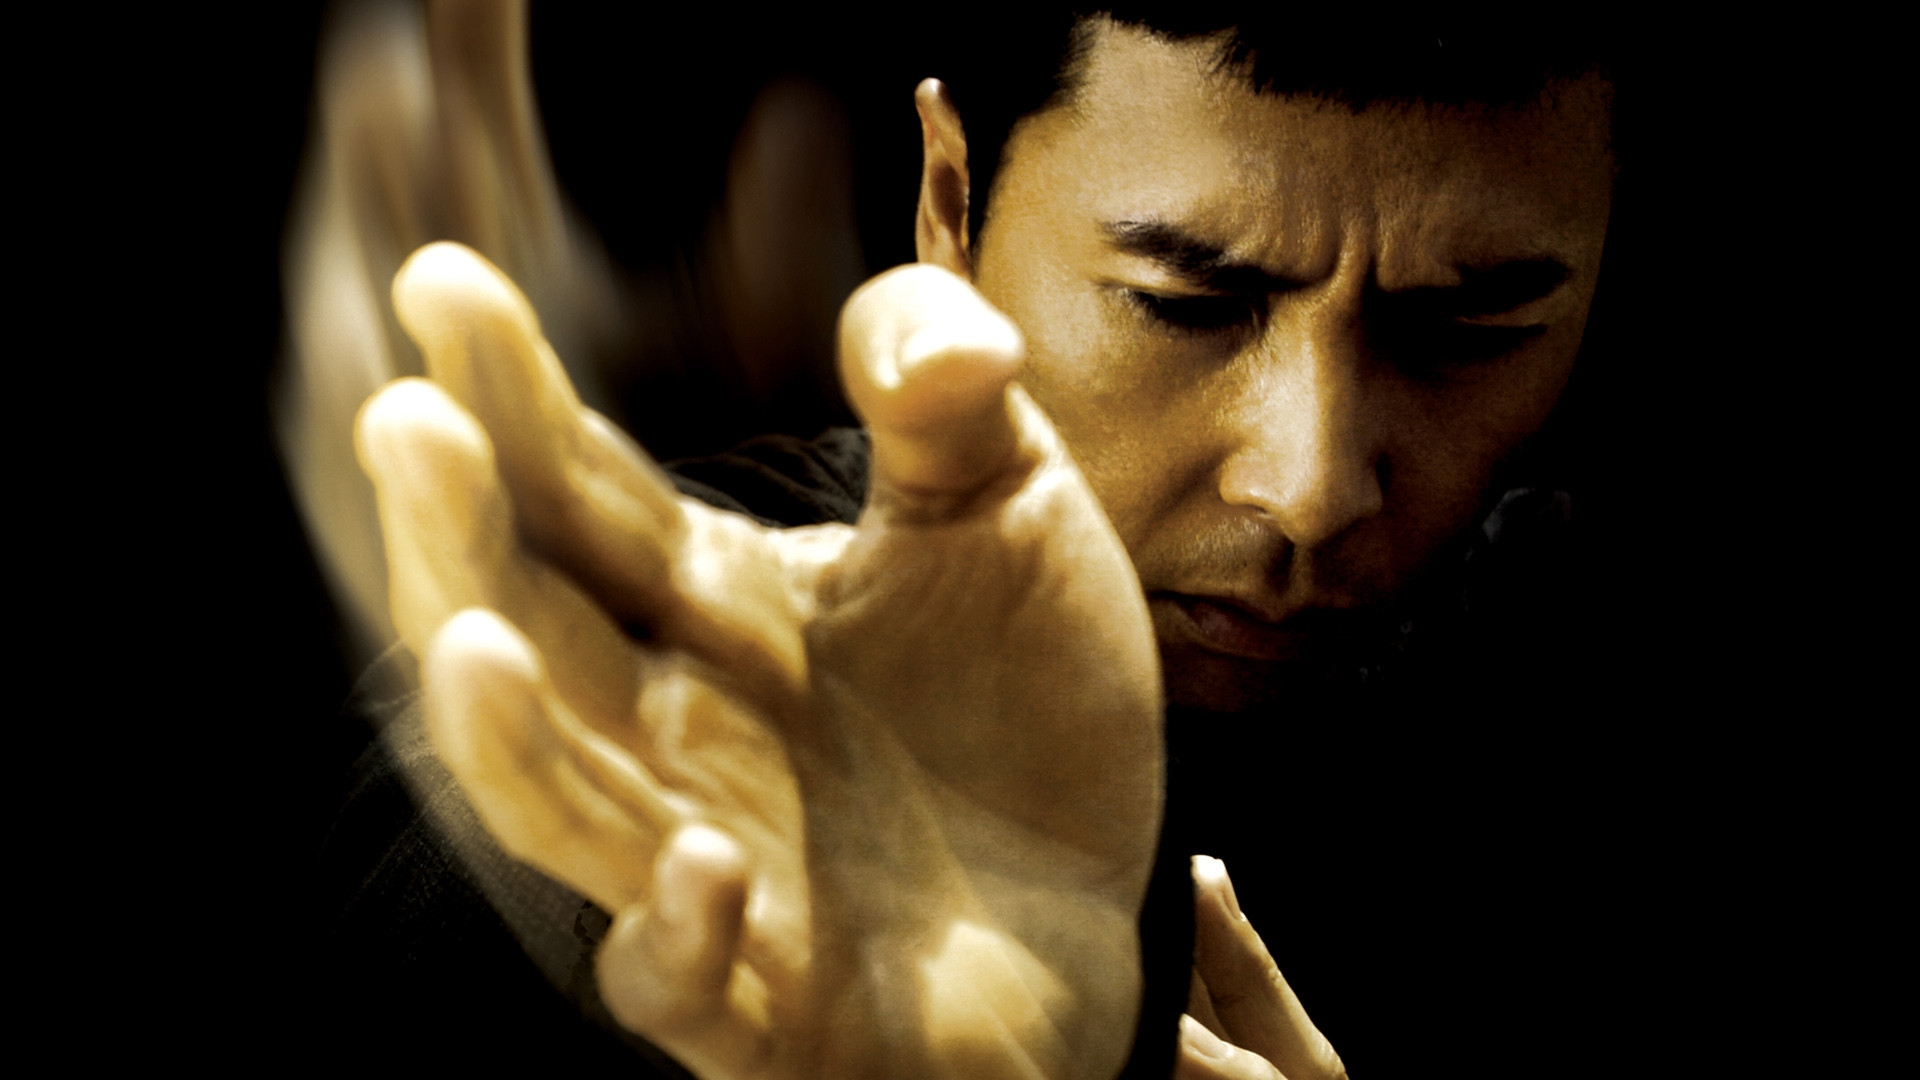 donnie yen computer wallpapers desktop backgrounds